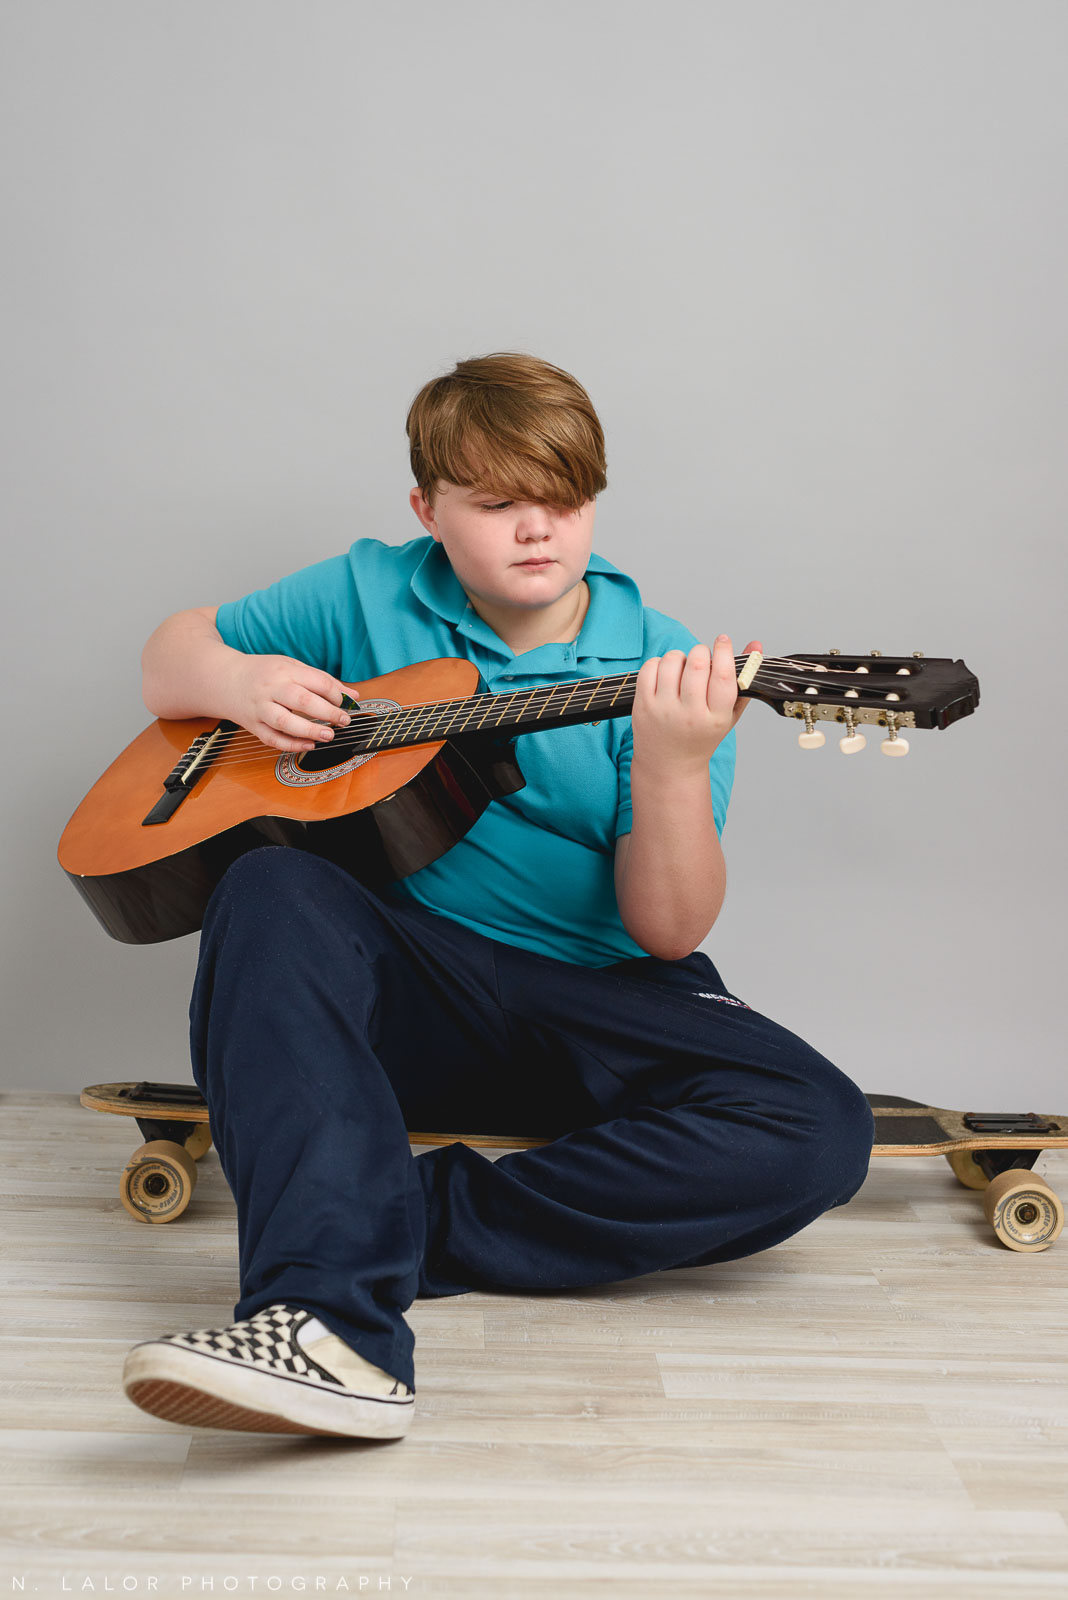 Guitars and skateboards. Teen family photo session with N. Lalor Photography. Greenwich, Connecticut studio photographer.